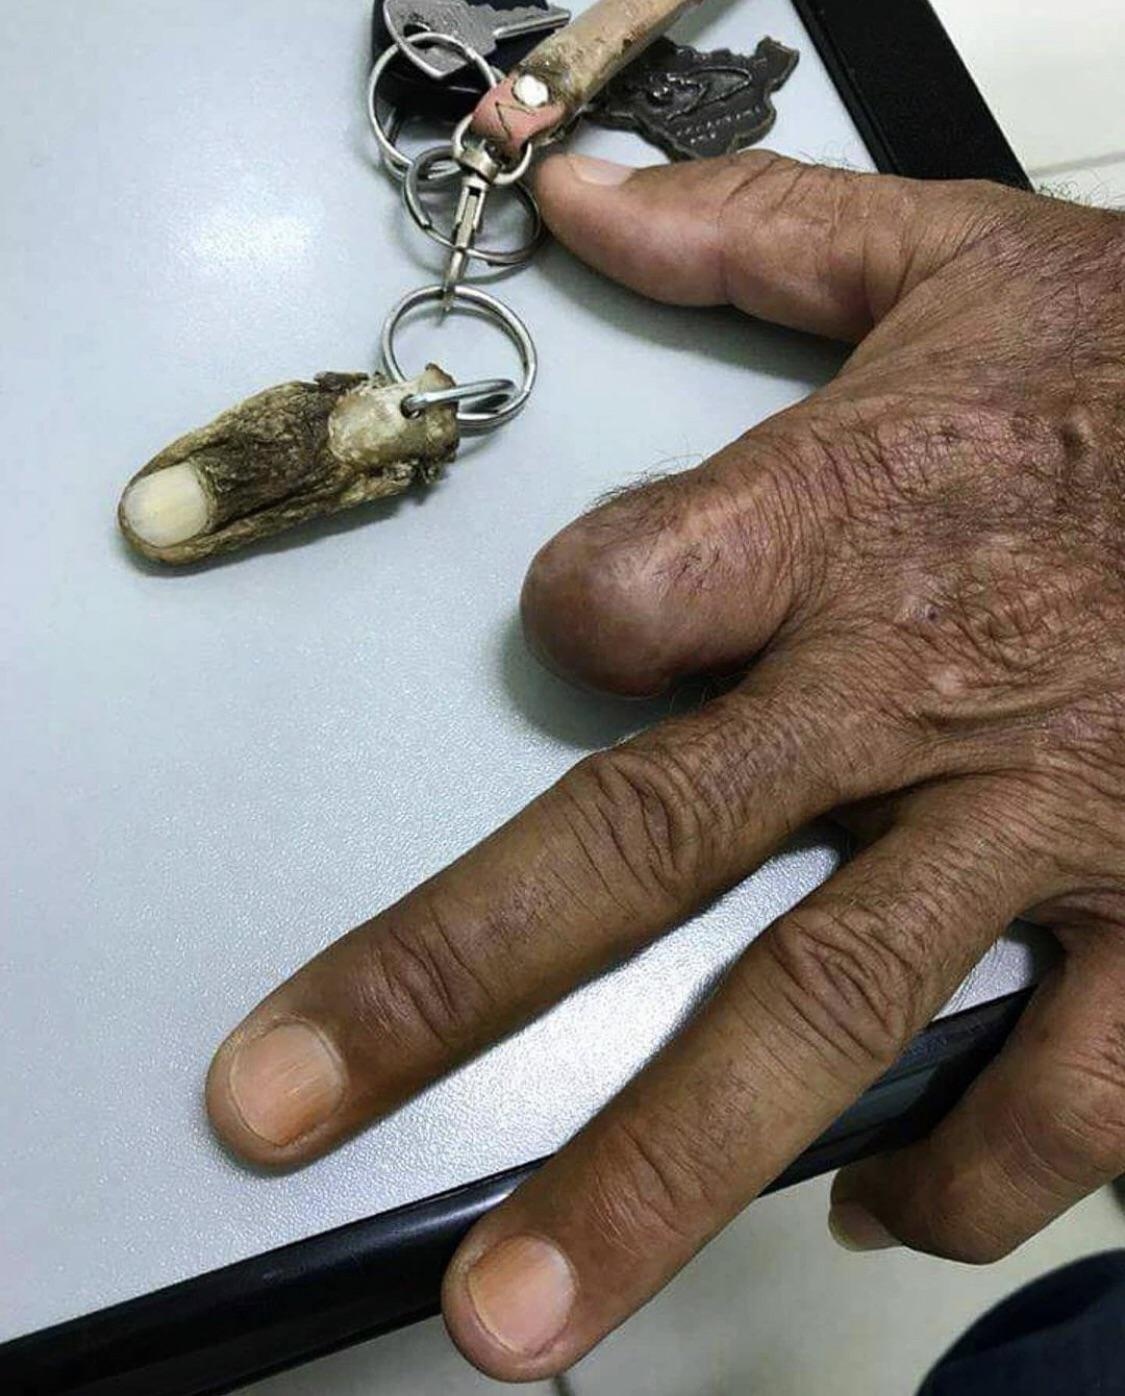 Amputated finger turns into a keychain 😵😱😳